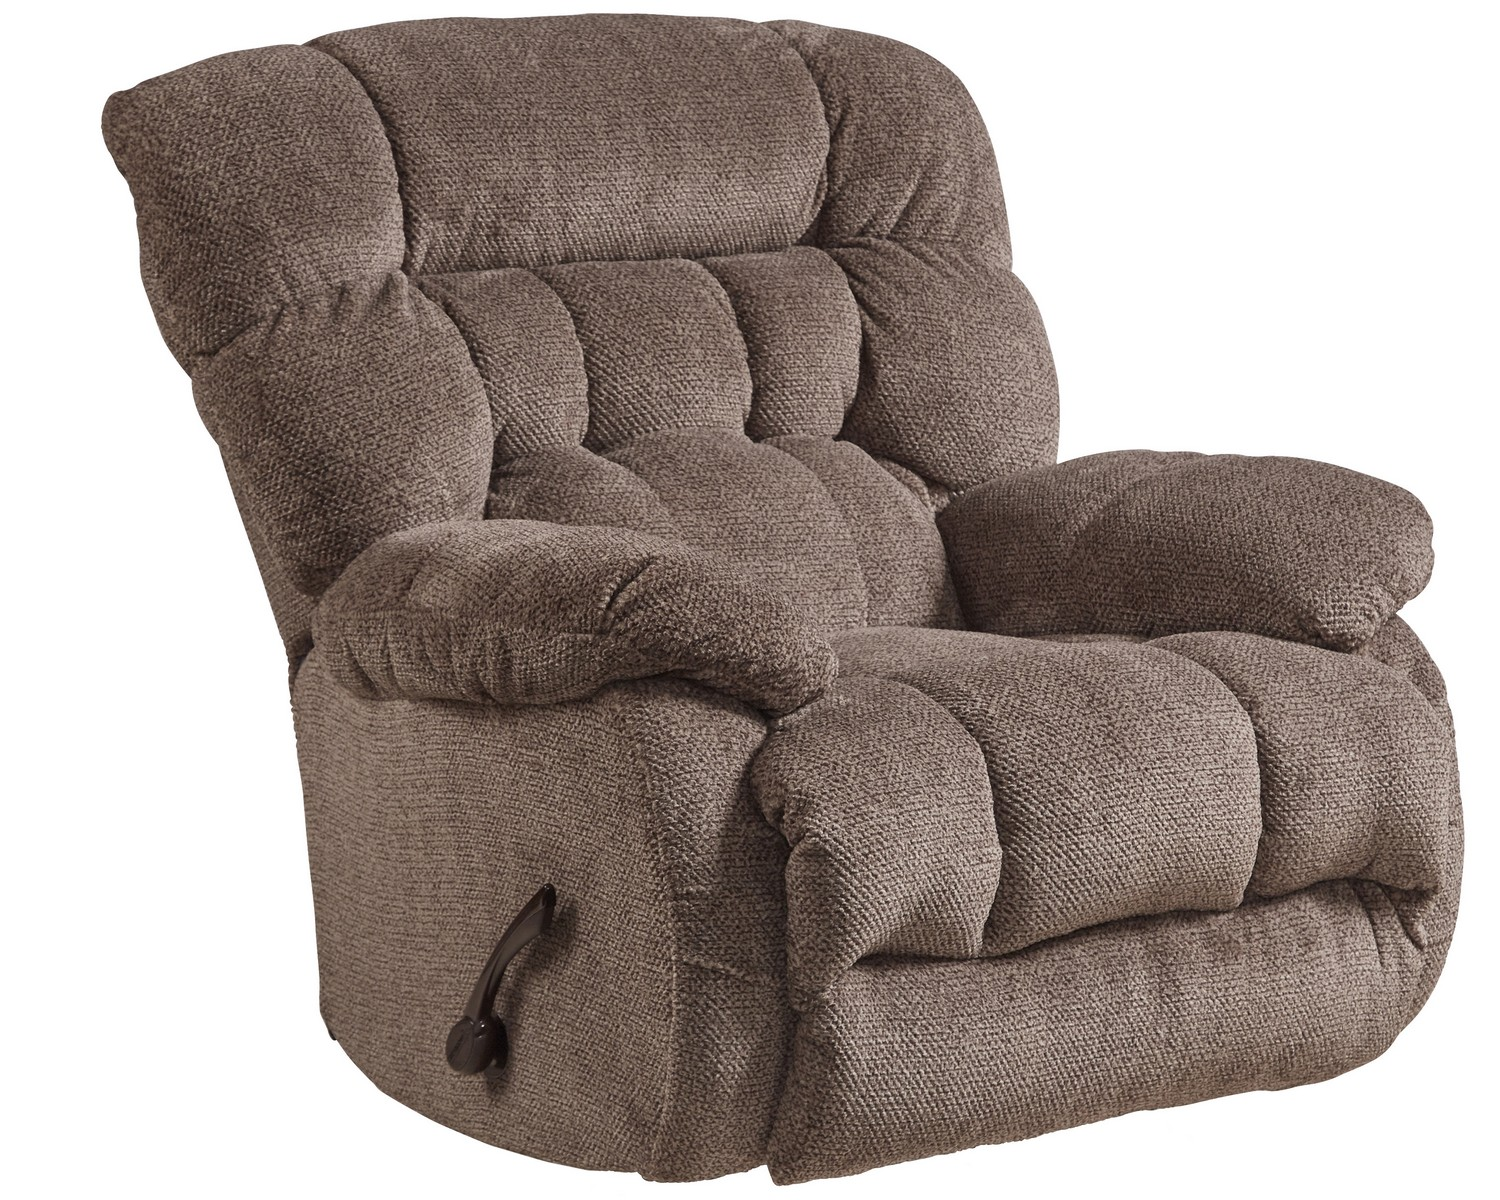 Catnapper daly chaise rocker recliner chateau cn 4765 2 for Catnapper chaise